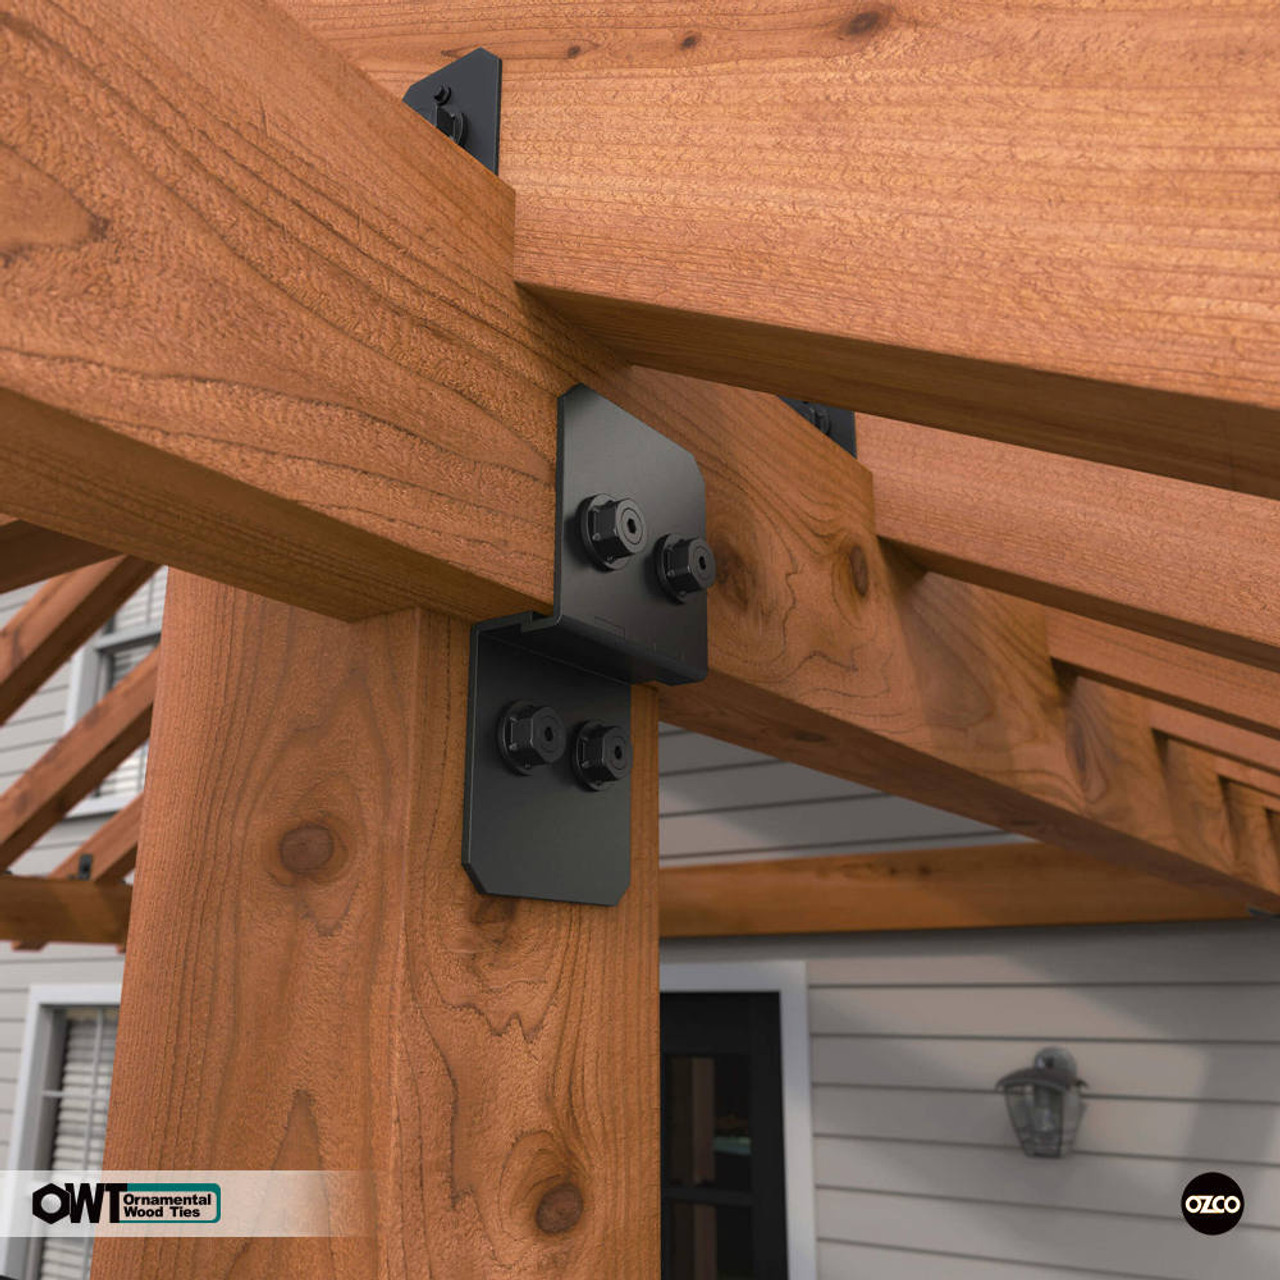 Wood Posts & Beams Connected Using OWT Post to Beam Connectors from OZCO Building Products